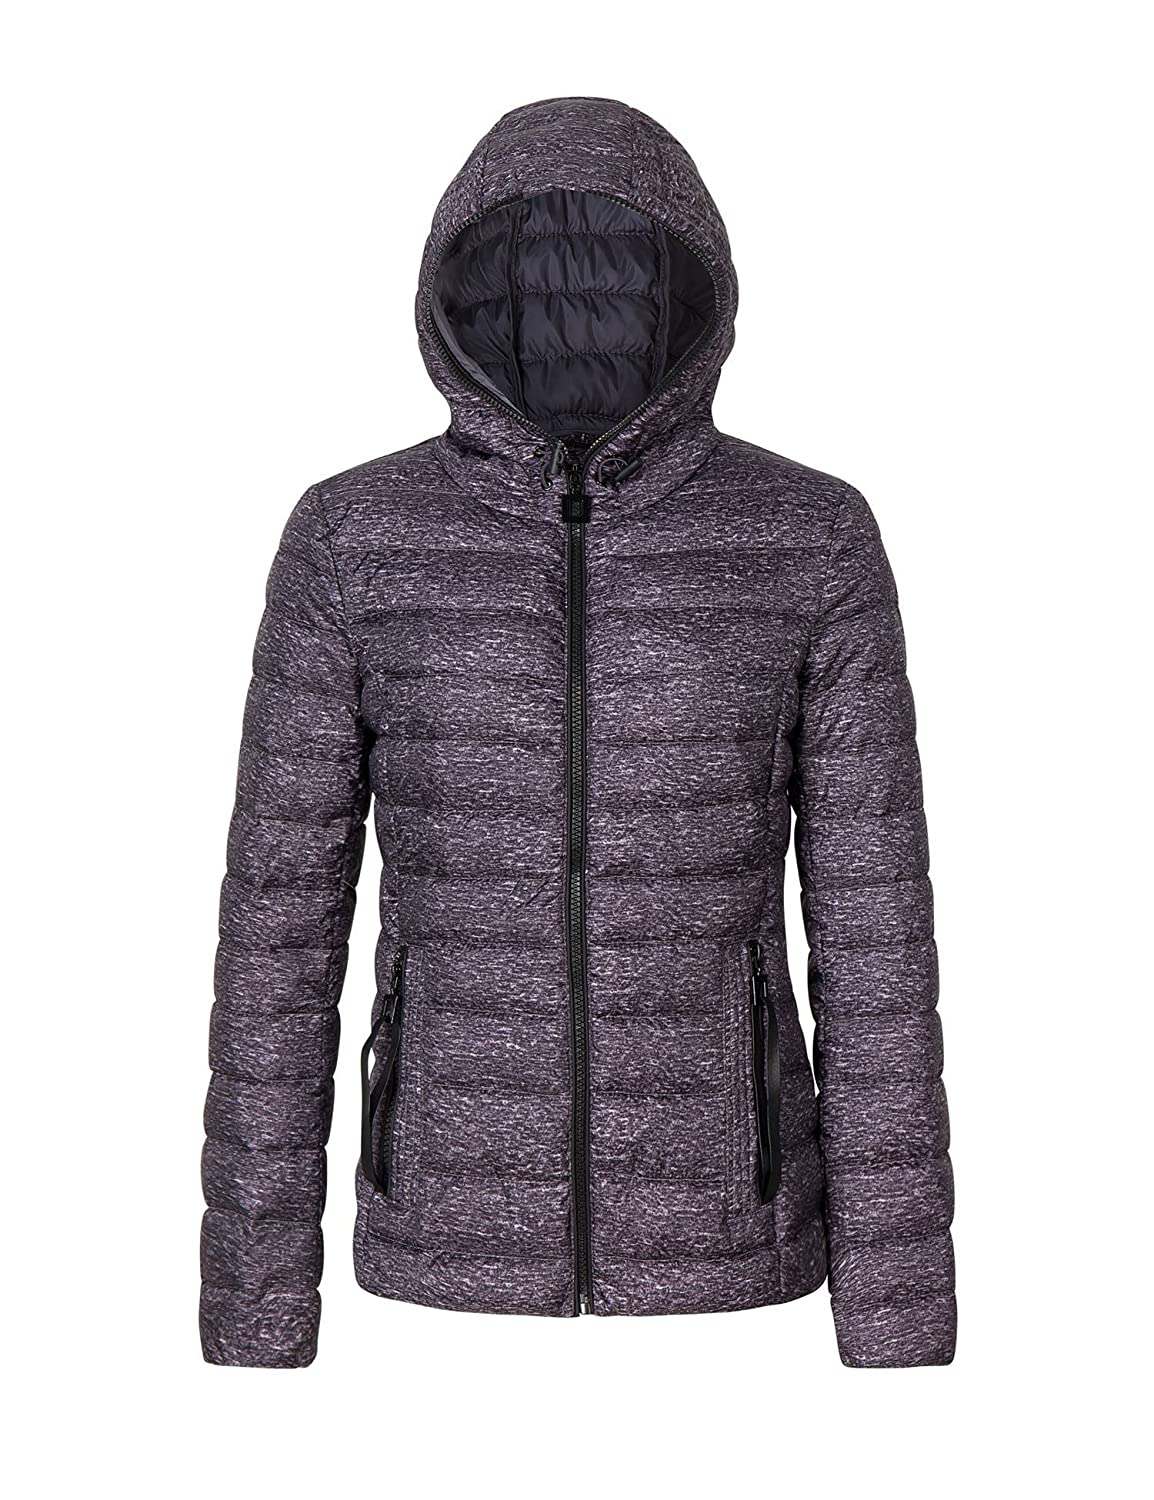 5379b9941 Bellivera Womens Puffer Winter Jacket for Spring and Fall,Padding  Lightweight Quilted Coat with Hood and Zipper Pockets